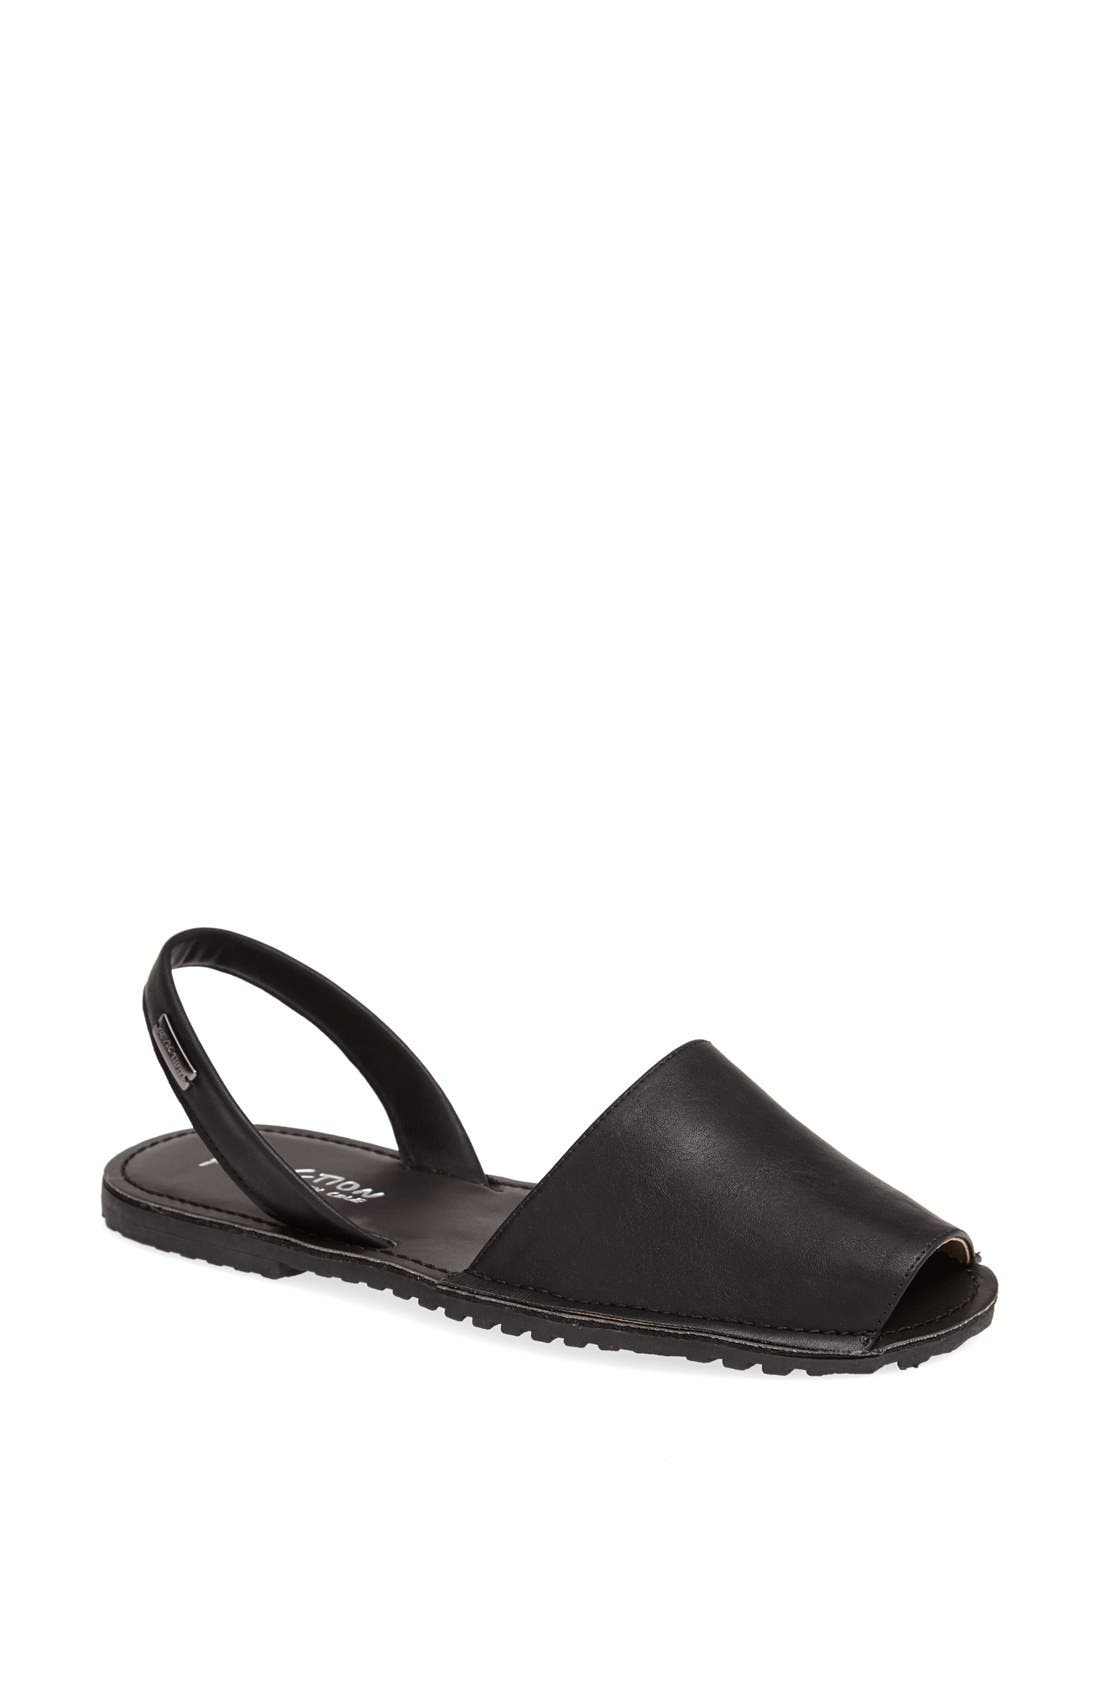 Alternate Image 1 Selected - Kenneth Cole Reaction 'Wipe Away' Slingback Sandal